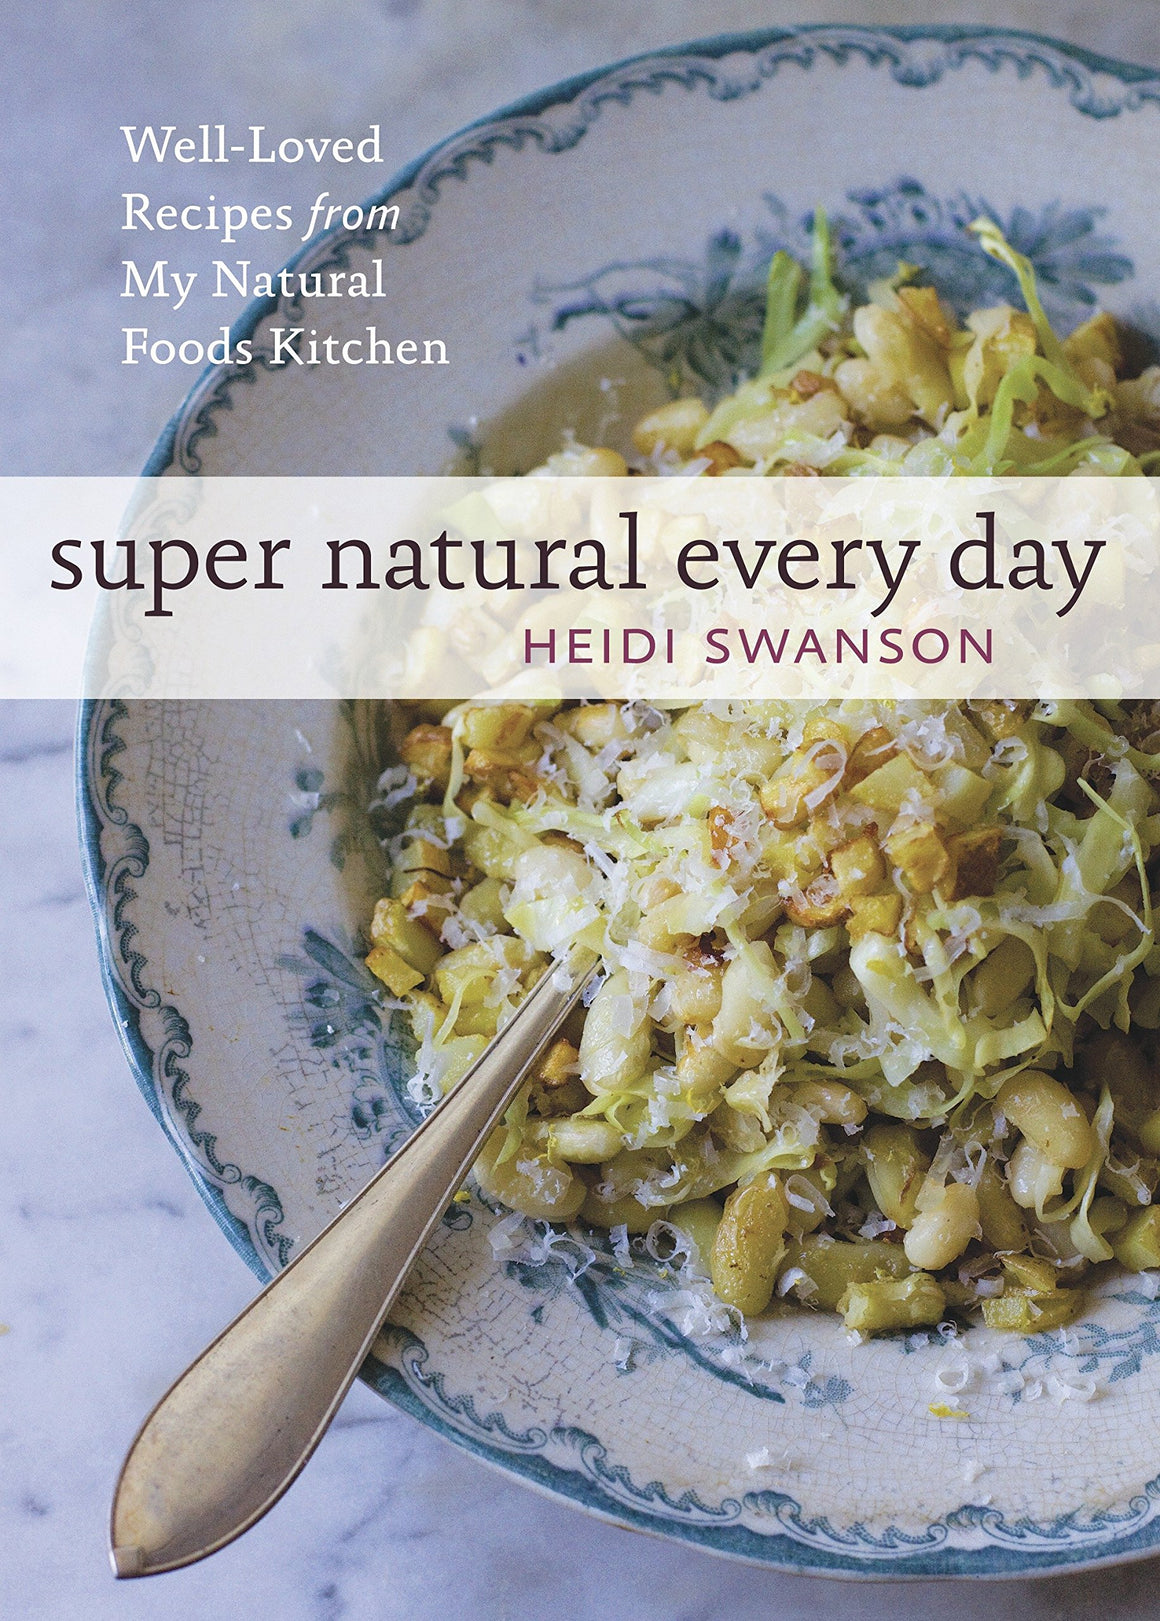 (Vegetarian) Heidi Swanson. Super Natural Every Day: Well-Loved Recipes from My Natural Foods Kitchen.